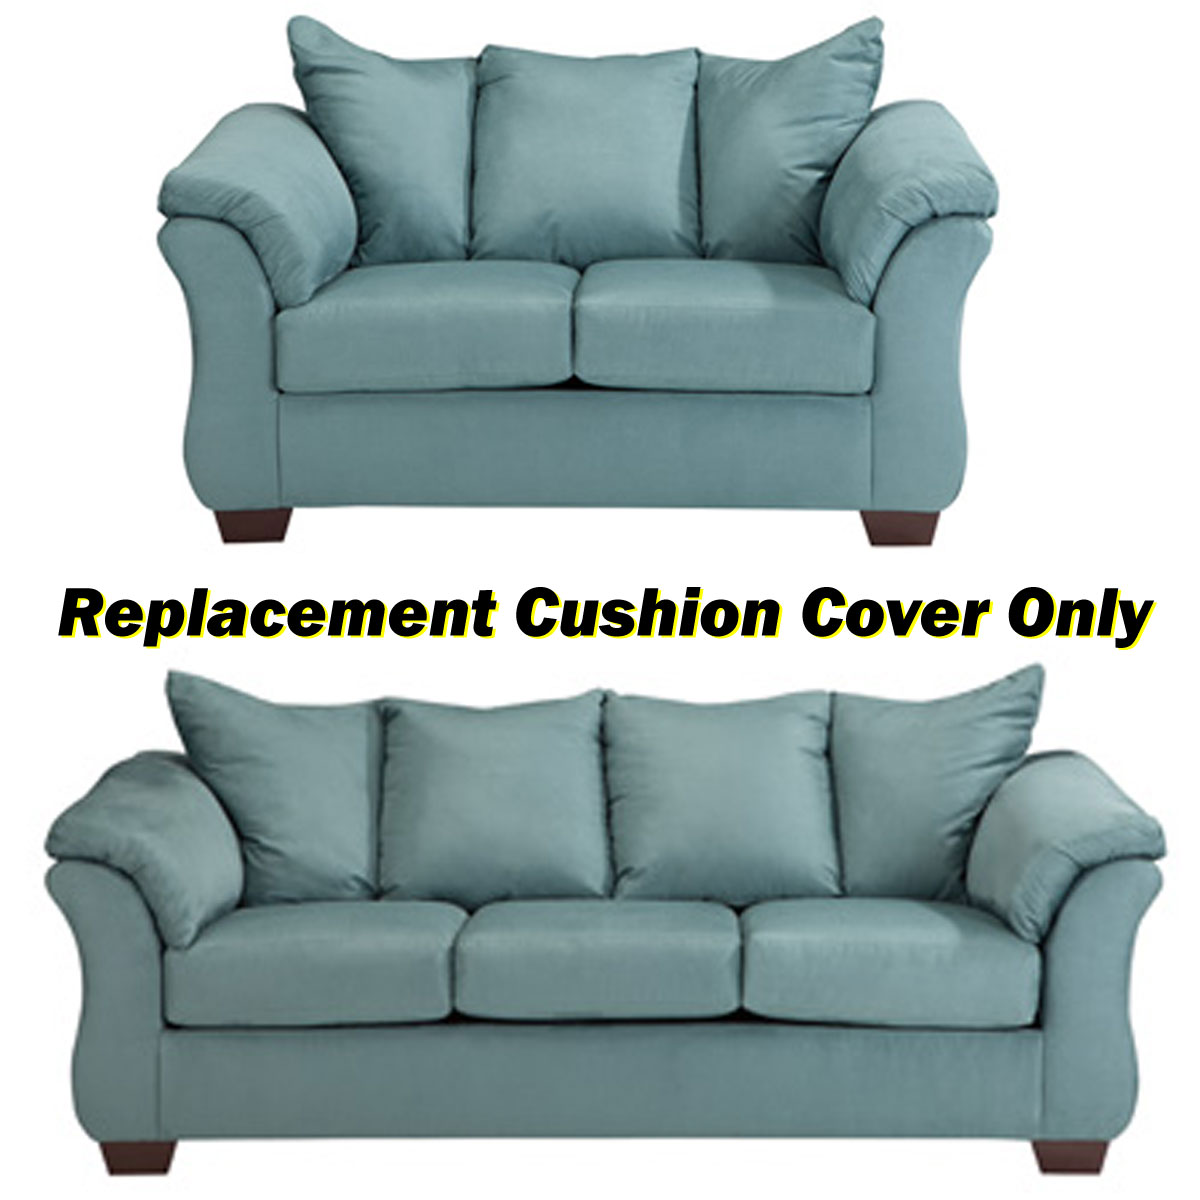 ashley darcy replacement cushion cover only 7500638 or 7500635 sky. Black Bedroom Furniture Sets. Home Design Ideas